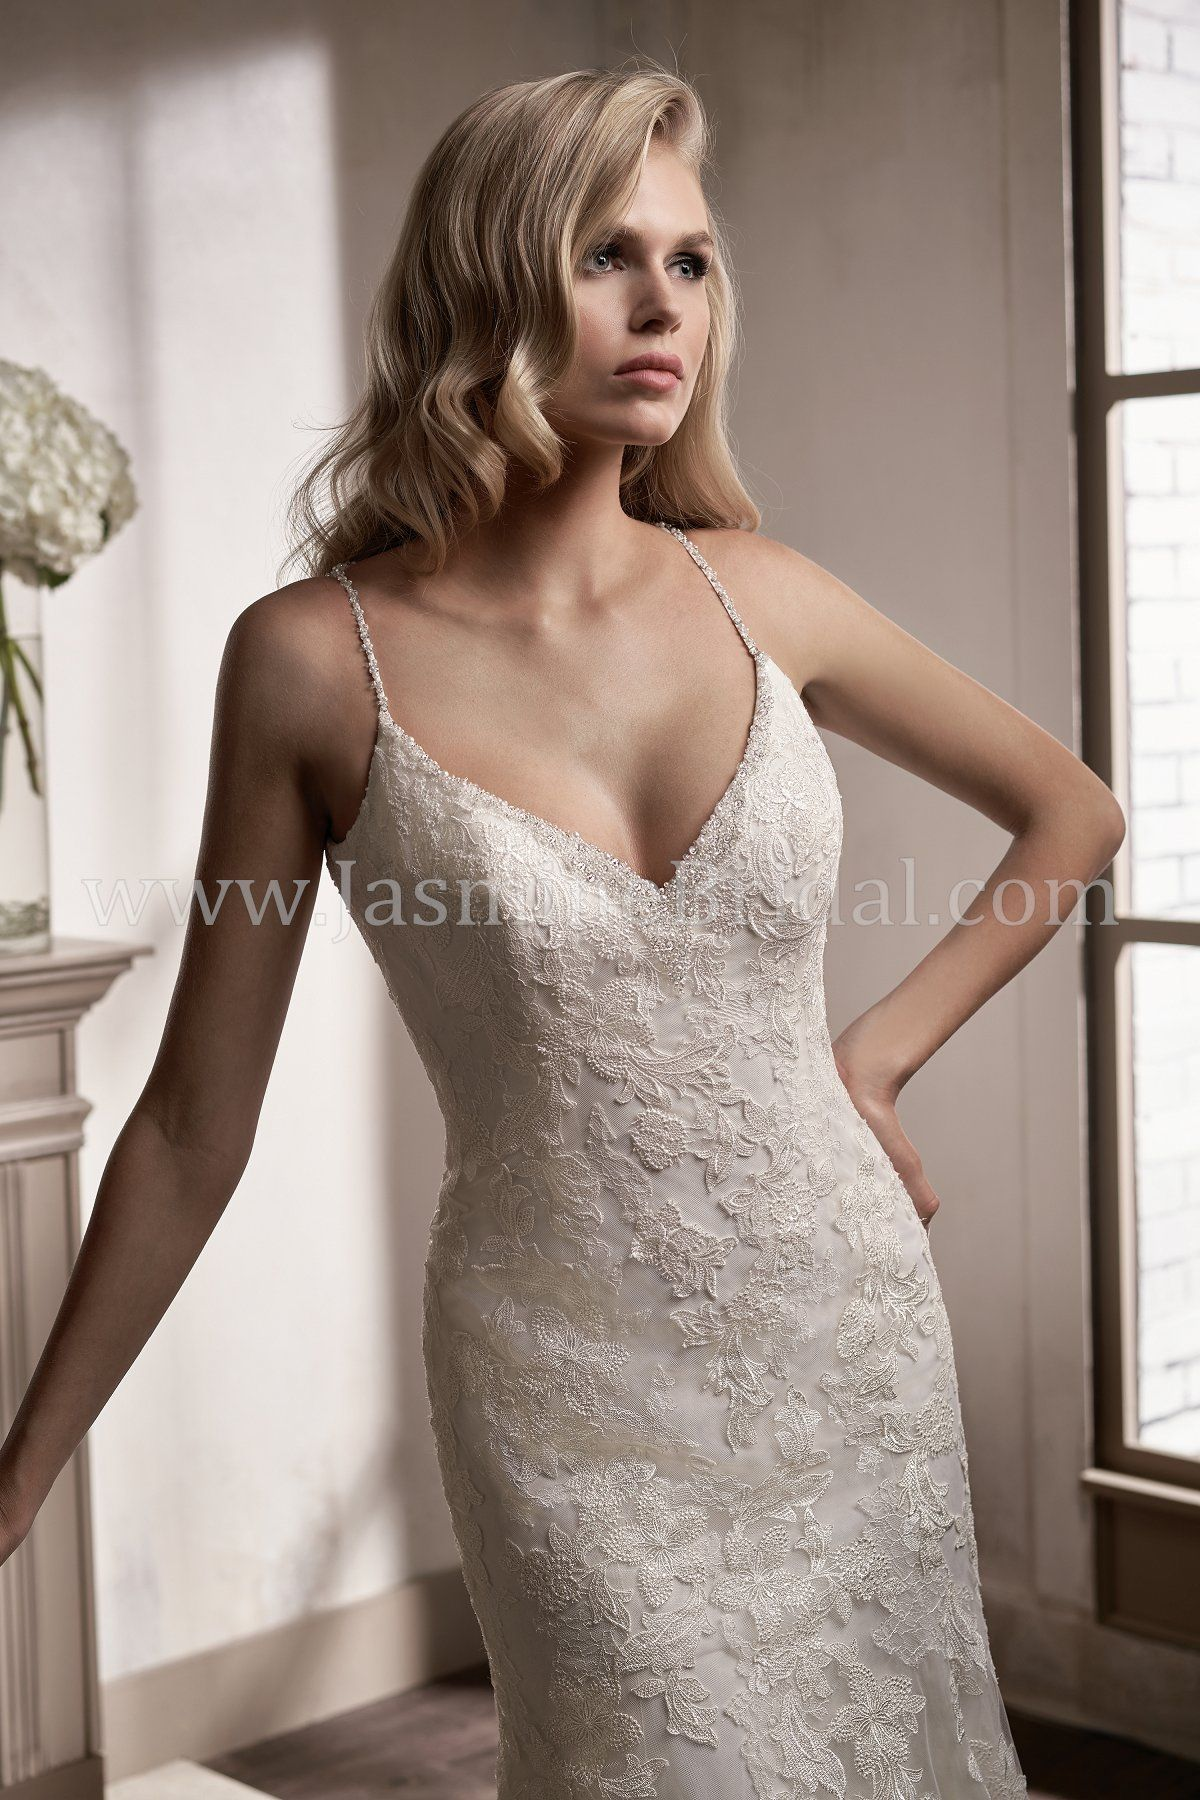 Jasmine bridal couture style t in chantilly lace embroidery